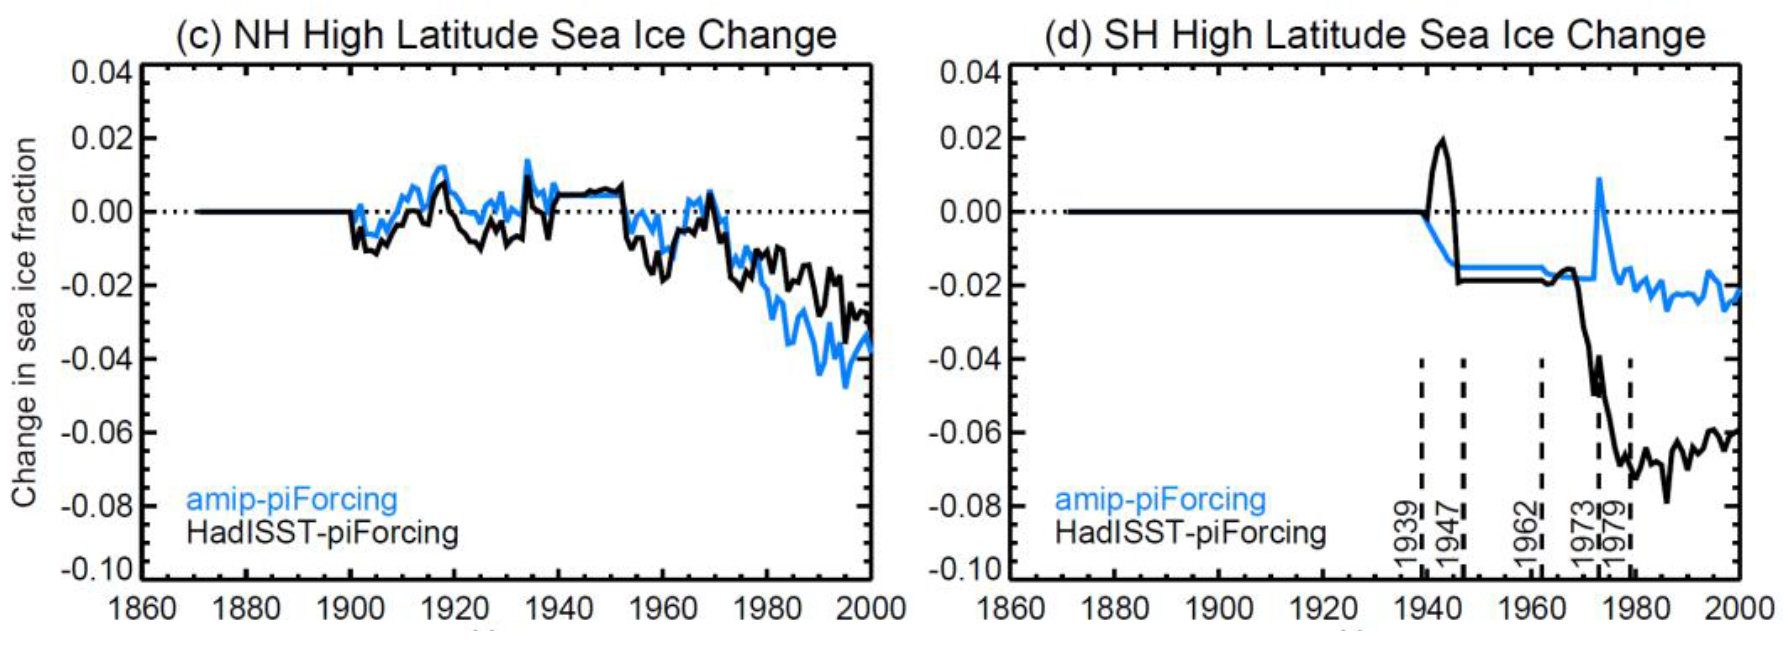 Warming patterns are unlikely to explain low historical estimates of